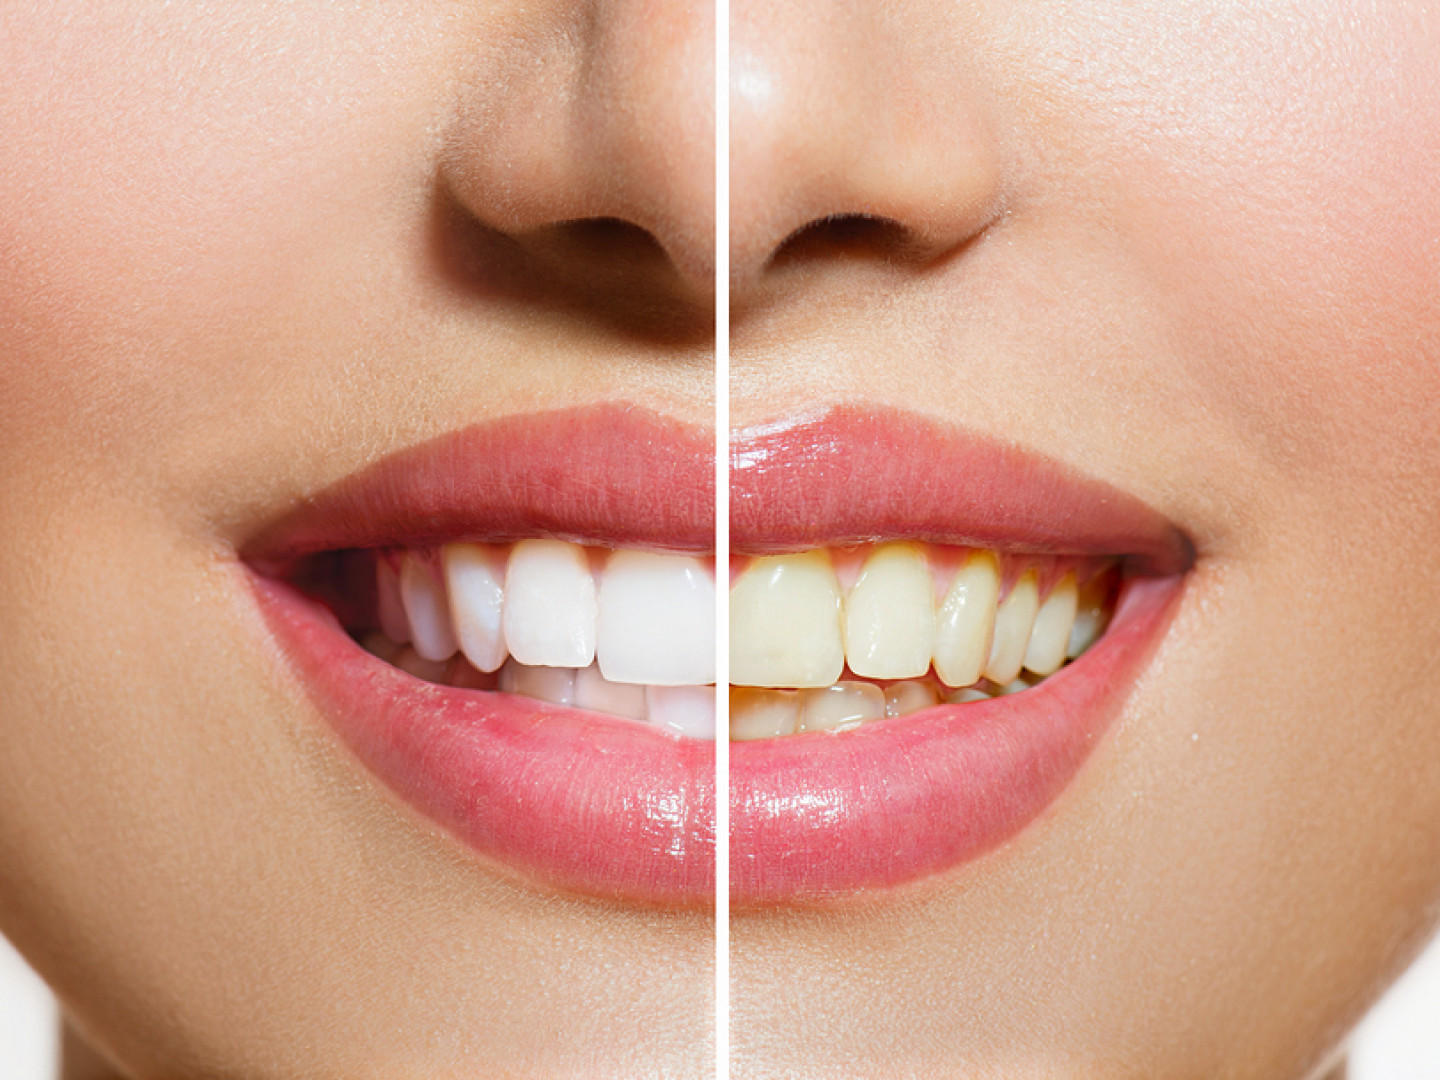 Get the Teeth Whitening Results You Want From Professionals You Can Trust